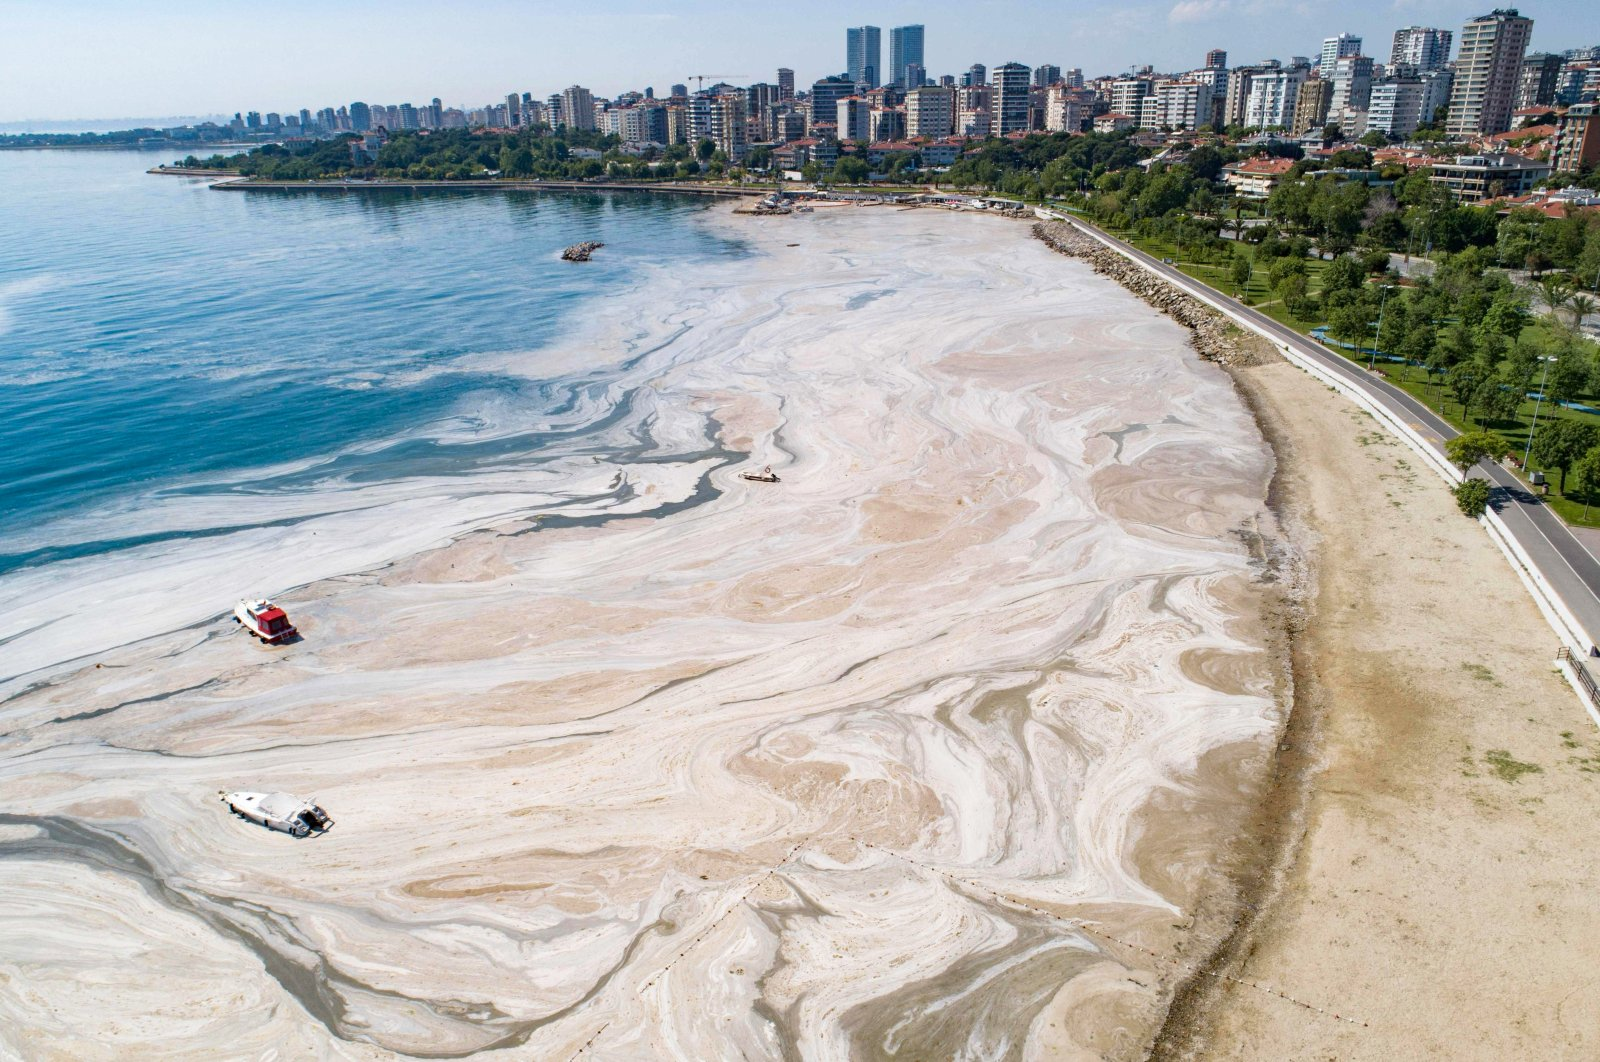 """Mucilage, or """"sea snot,"""" covers the shoreline in Istanbul, Turkey, June 6, 2021. (AFP PHOTO)"""